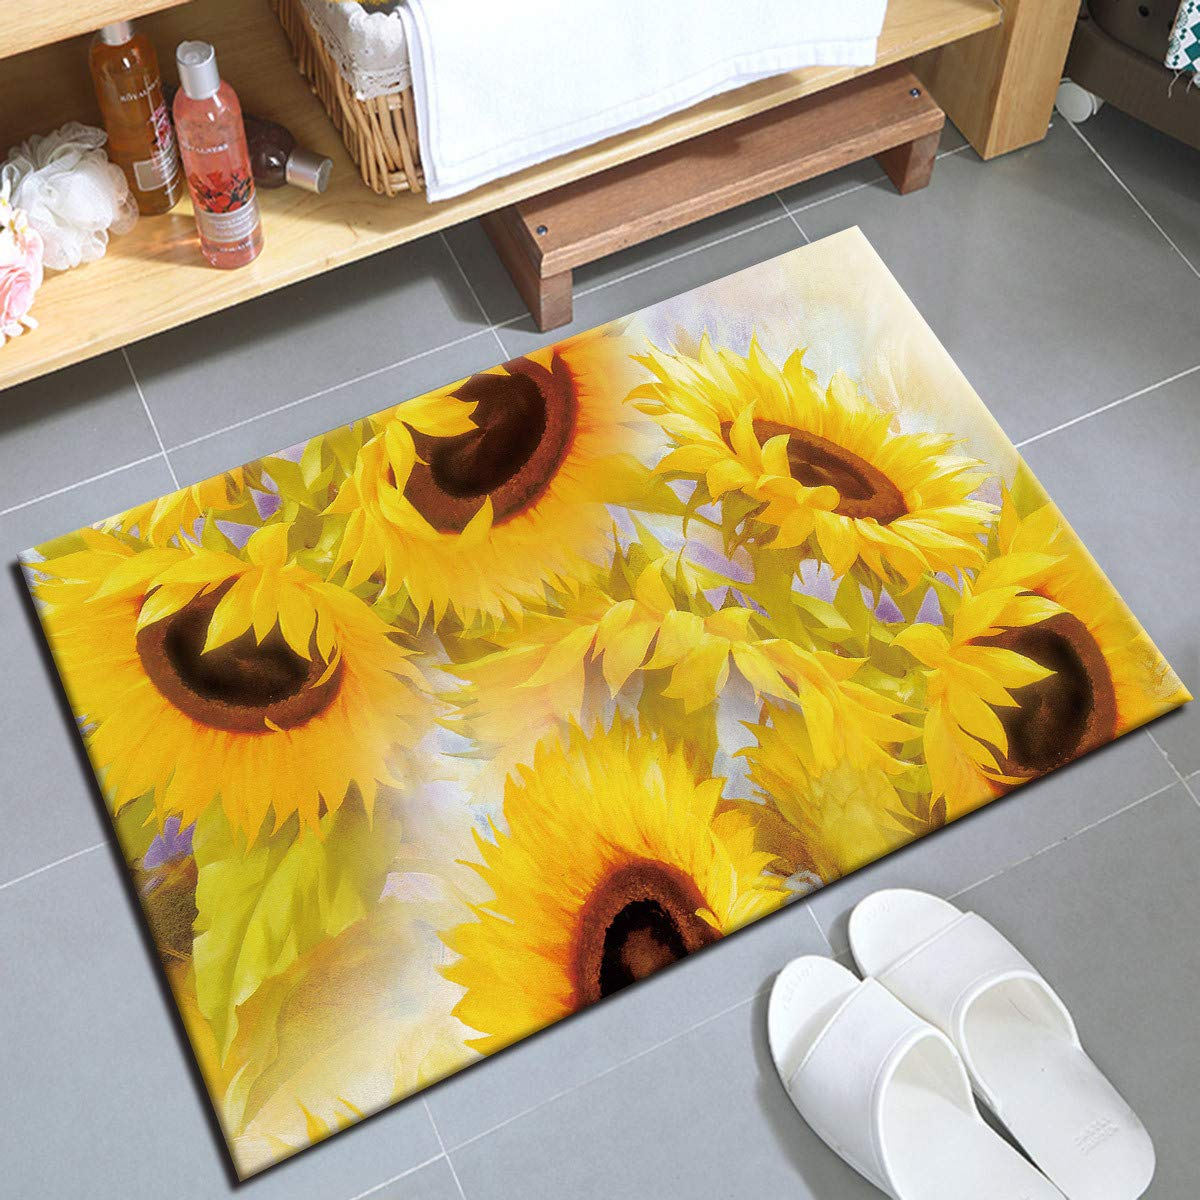 HVEST Sunflower Area Rugs Blooming Yellow Flowers Carpet Non-Slip Doormat for Living Room Bedroom Kitchen Floor Mat,(1'4''x2')